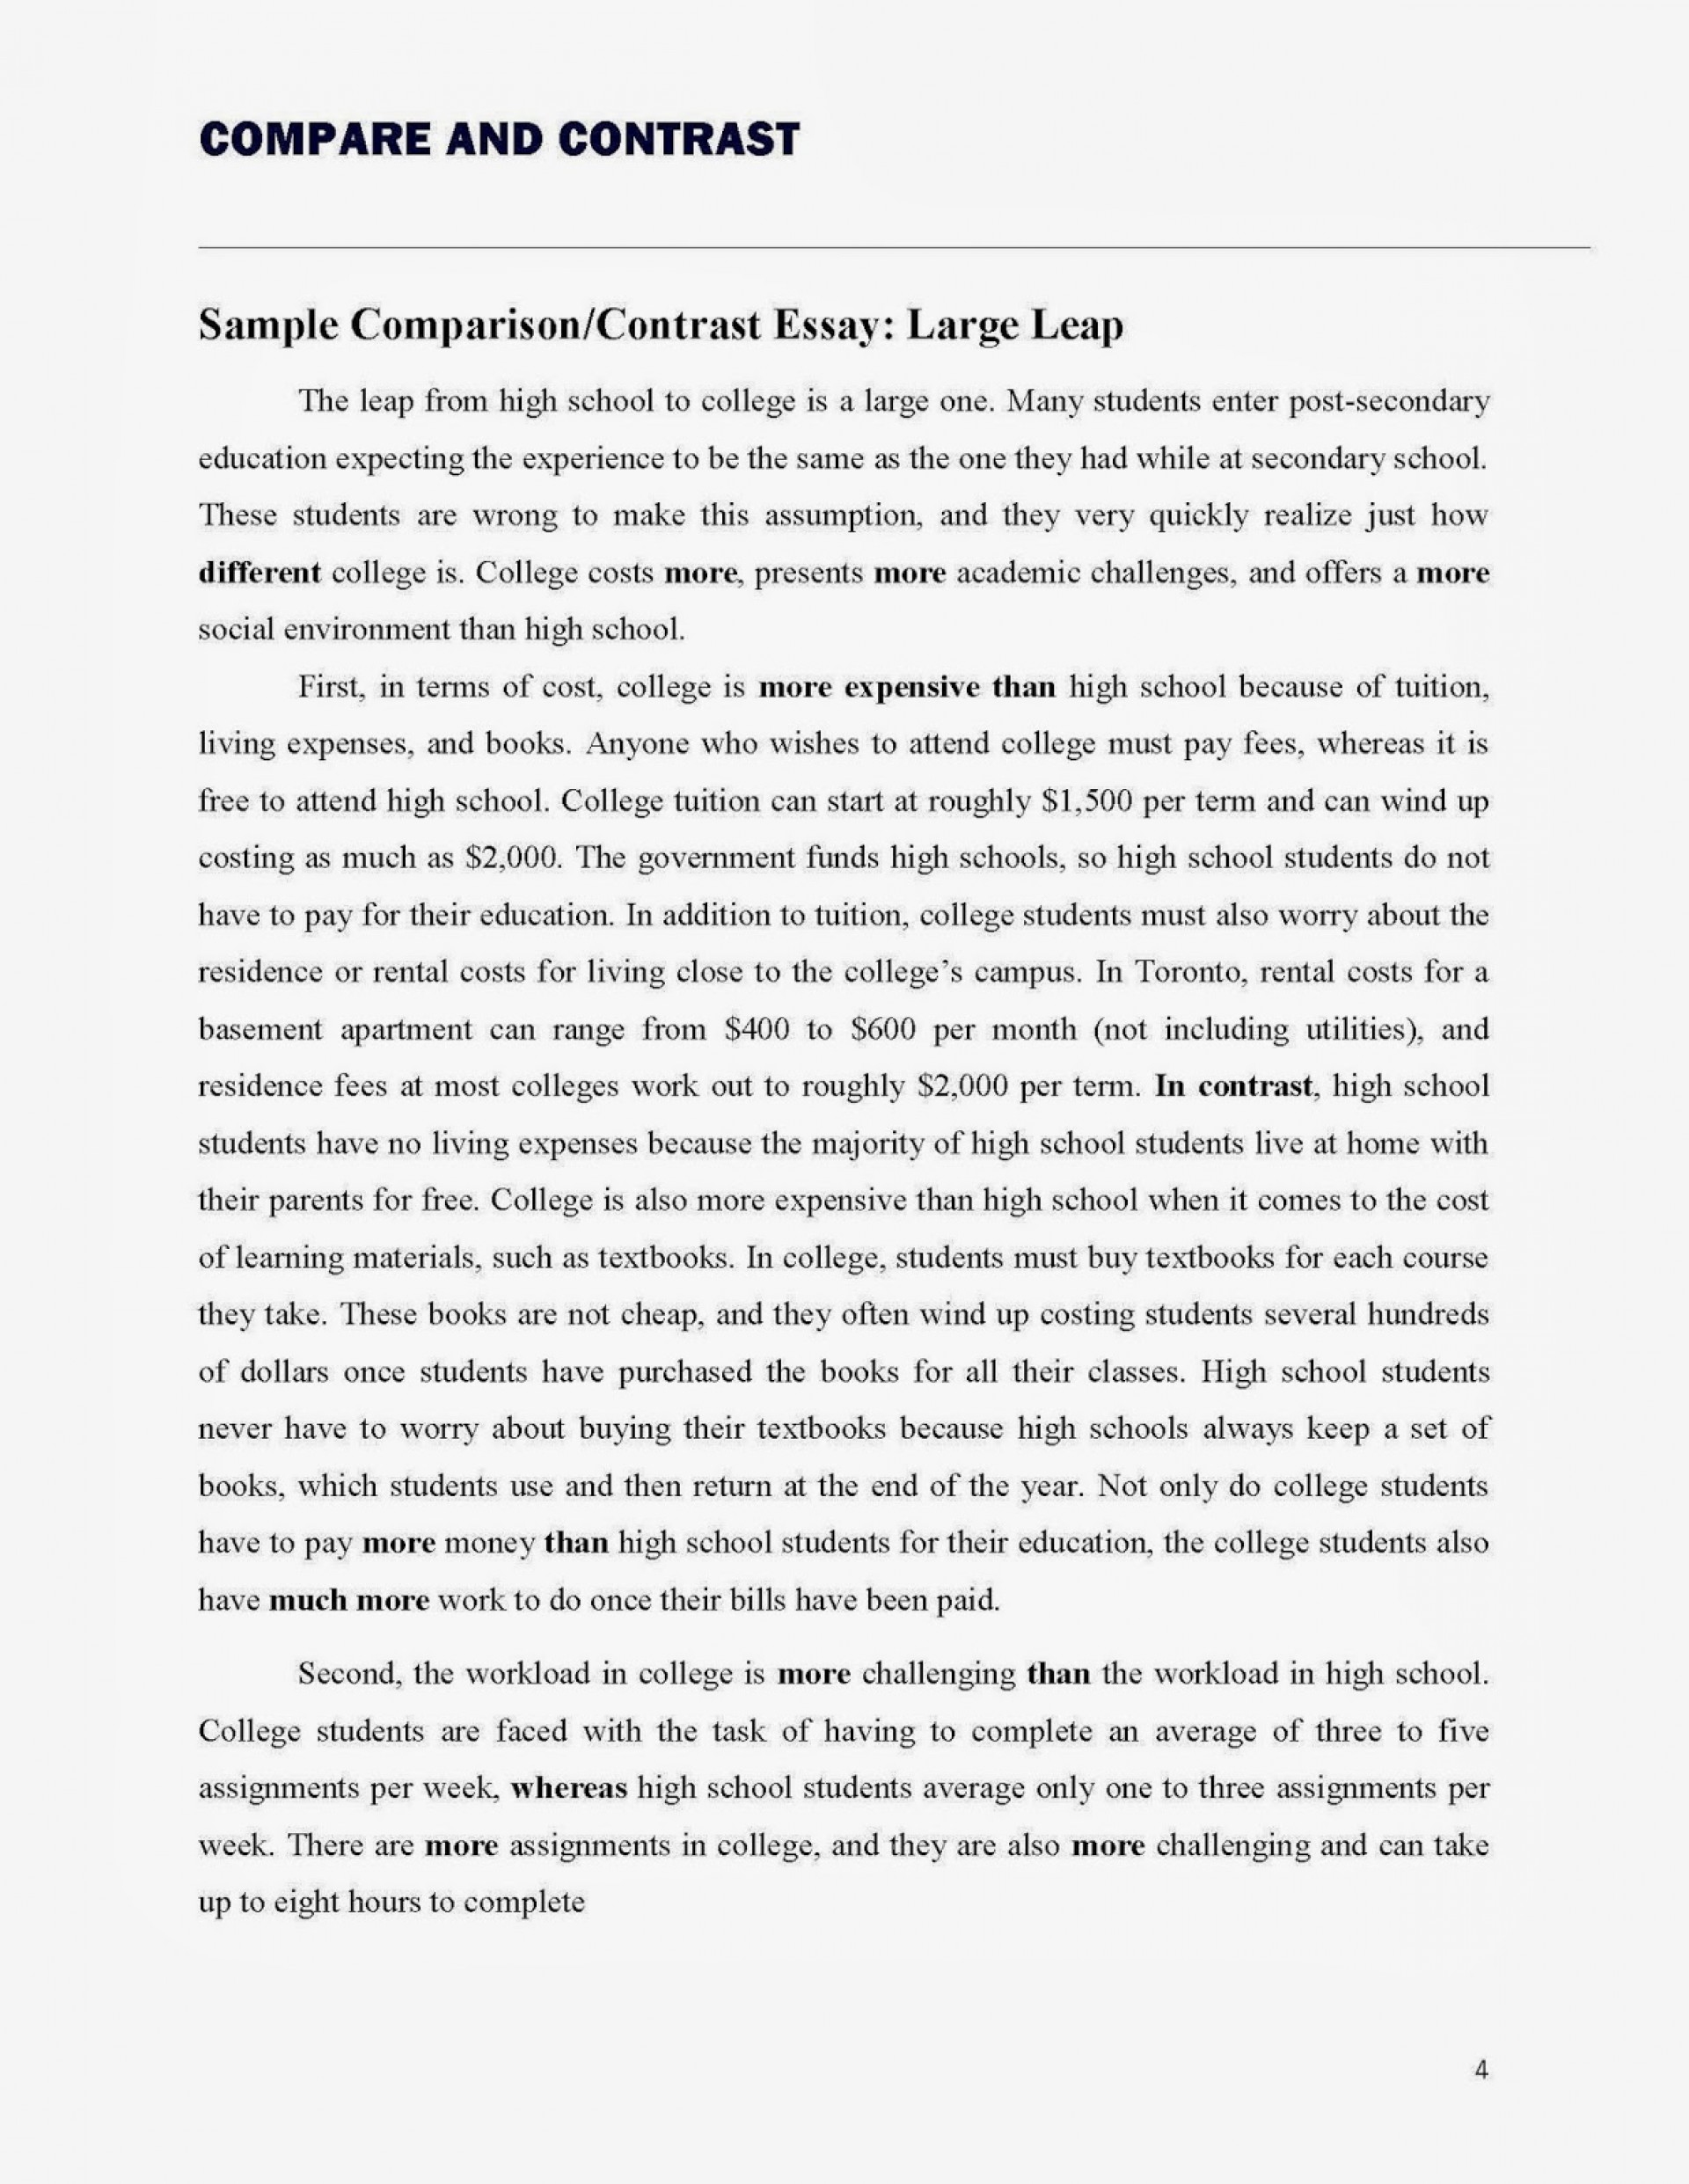 High School Vs College Essay Compare And Contrast  Paper Essay also Biographical Essay Sample  Comparison Contrast Essay Topics Example  Examples Of Thesis Statements For Persuasive Essays